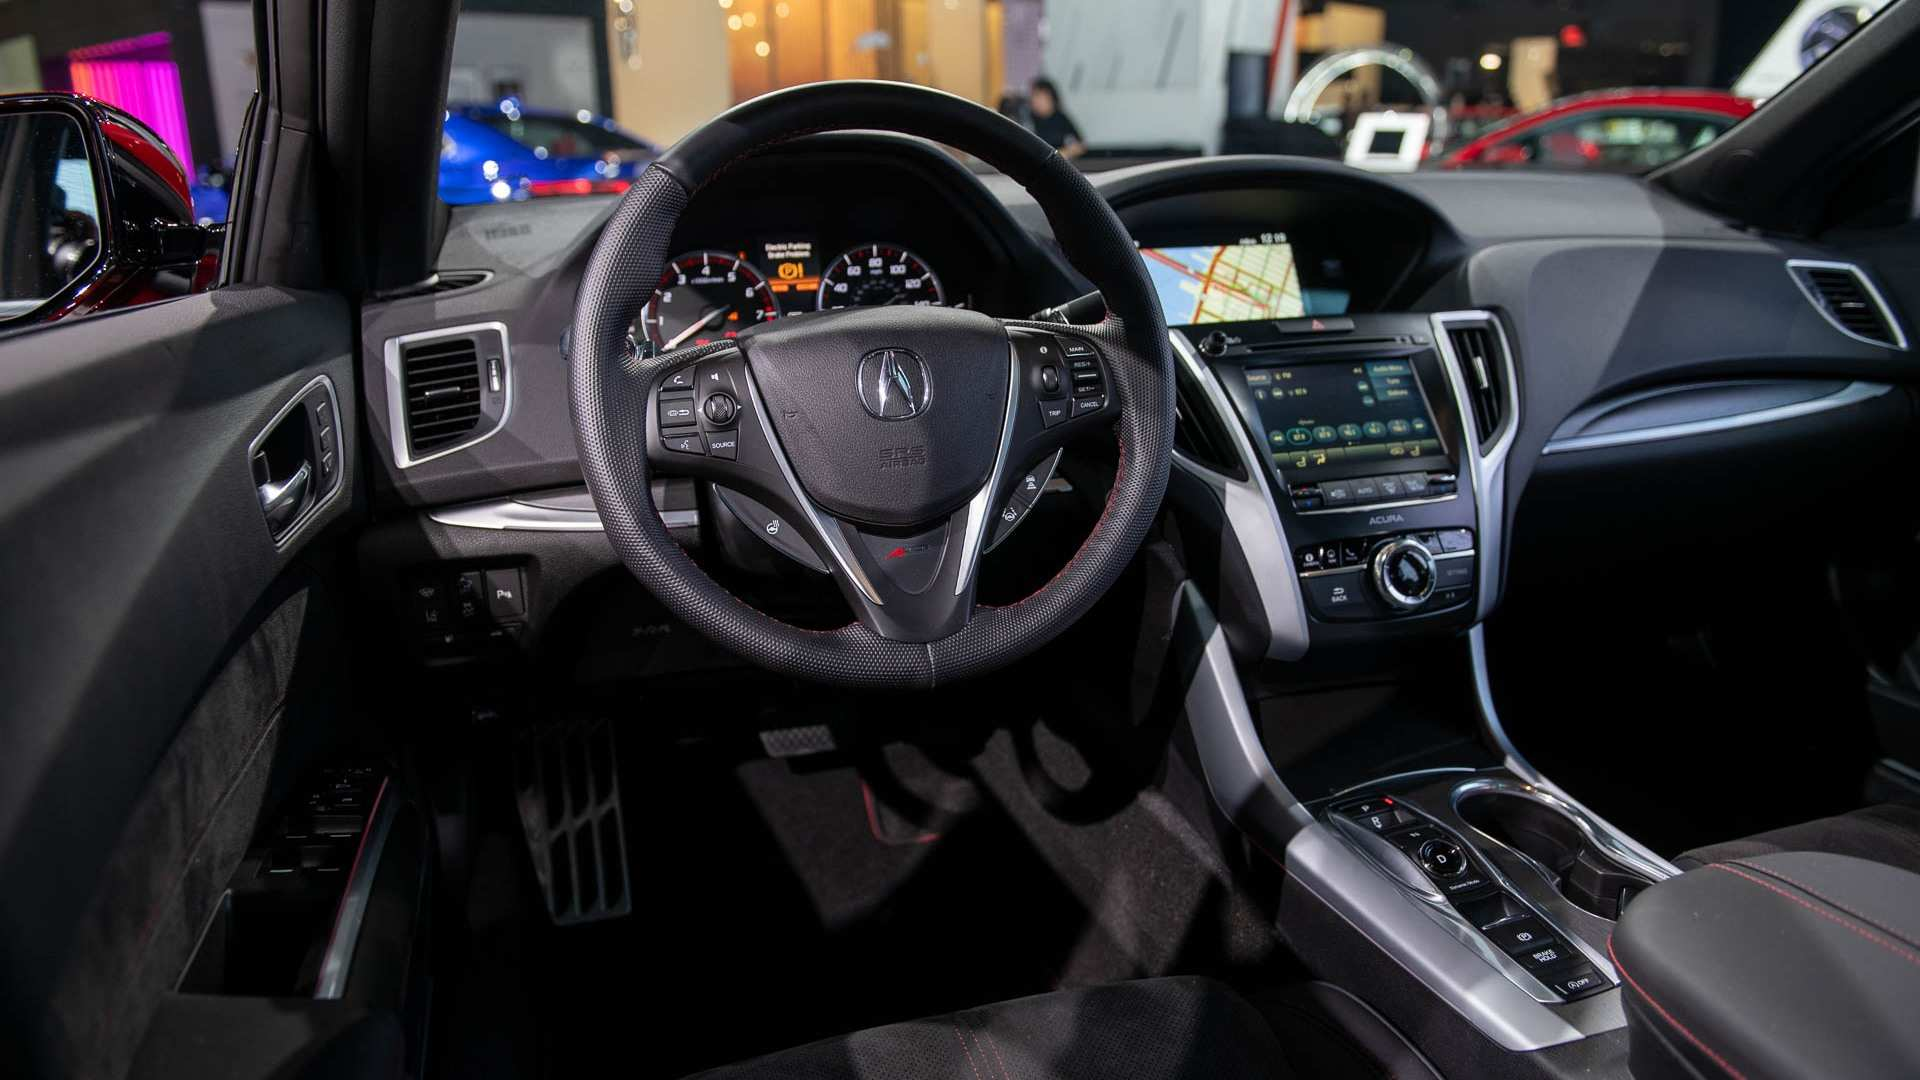 68 Great 2020 Acura Tlx Interior Redesign and Concept with 2020 Acura Tlx Interior